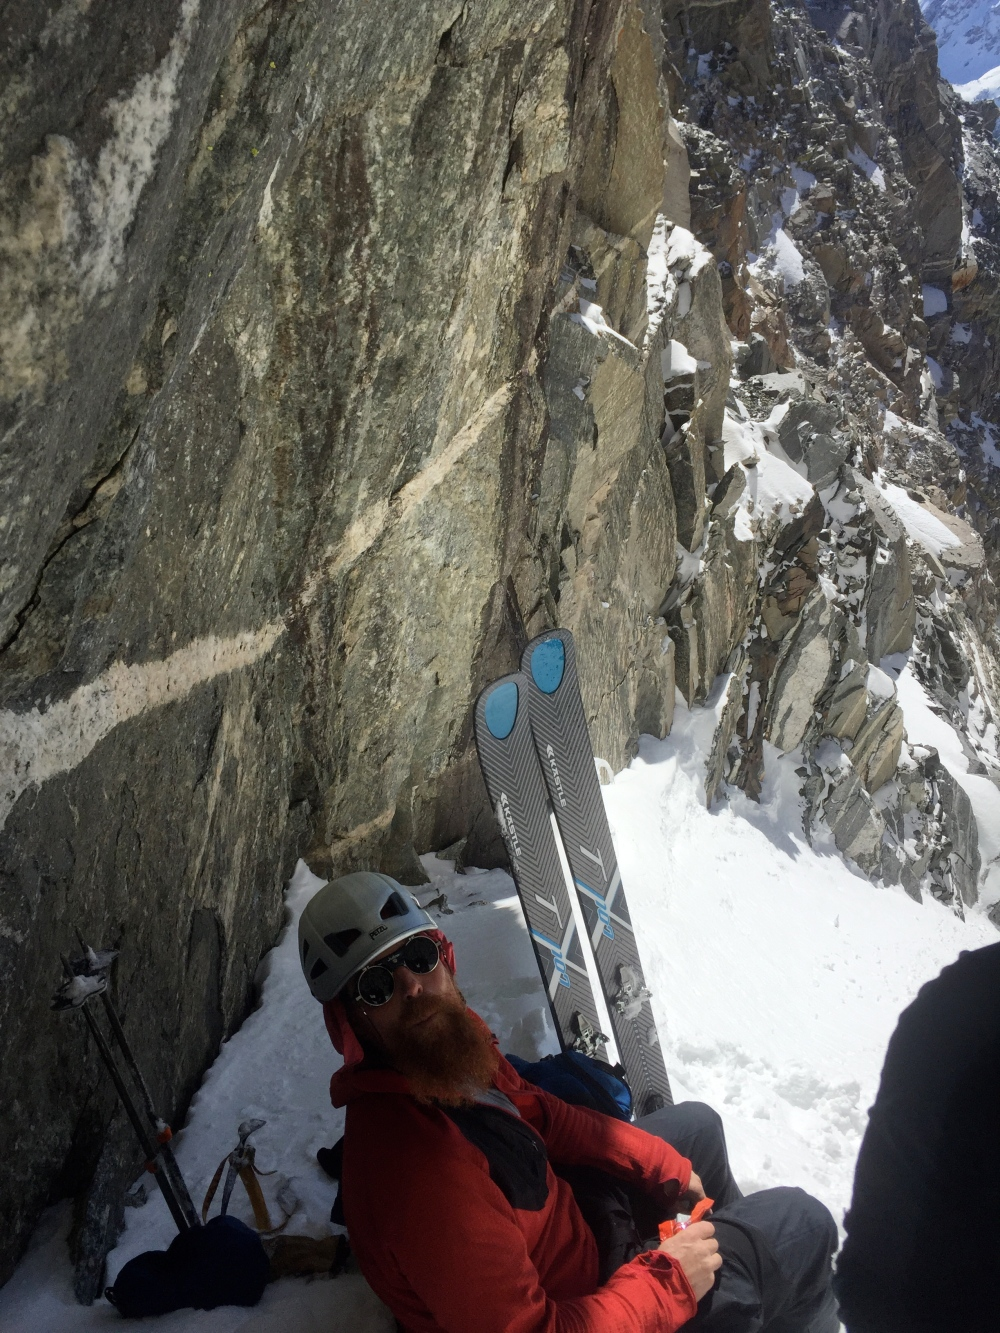 Mark Fellerman enjoying the some shade at the top of the Couloir.